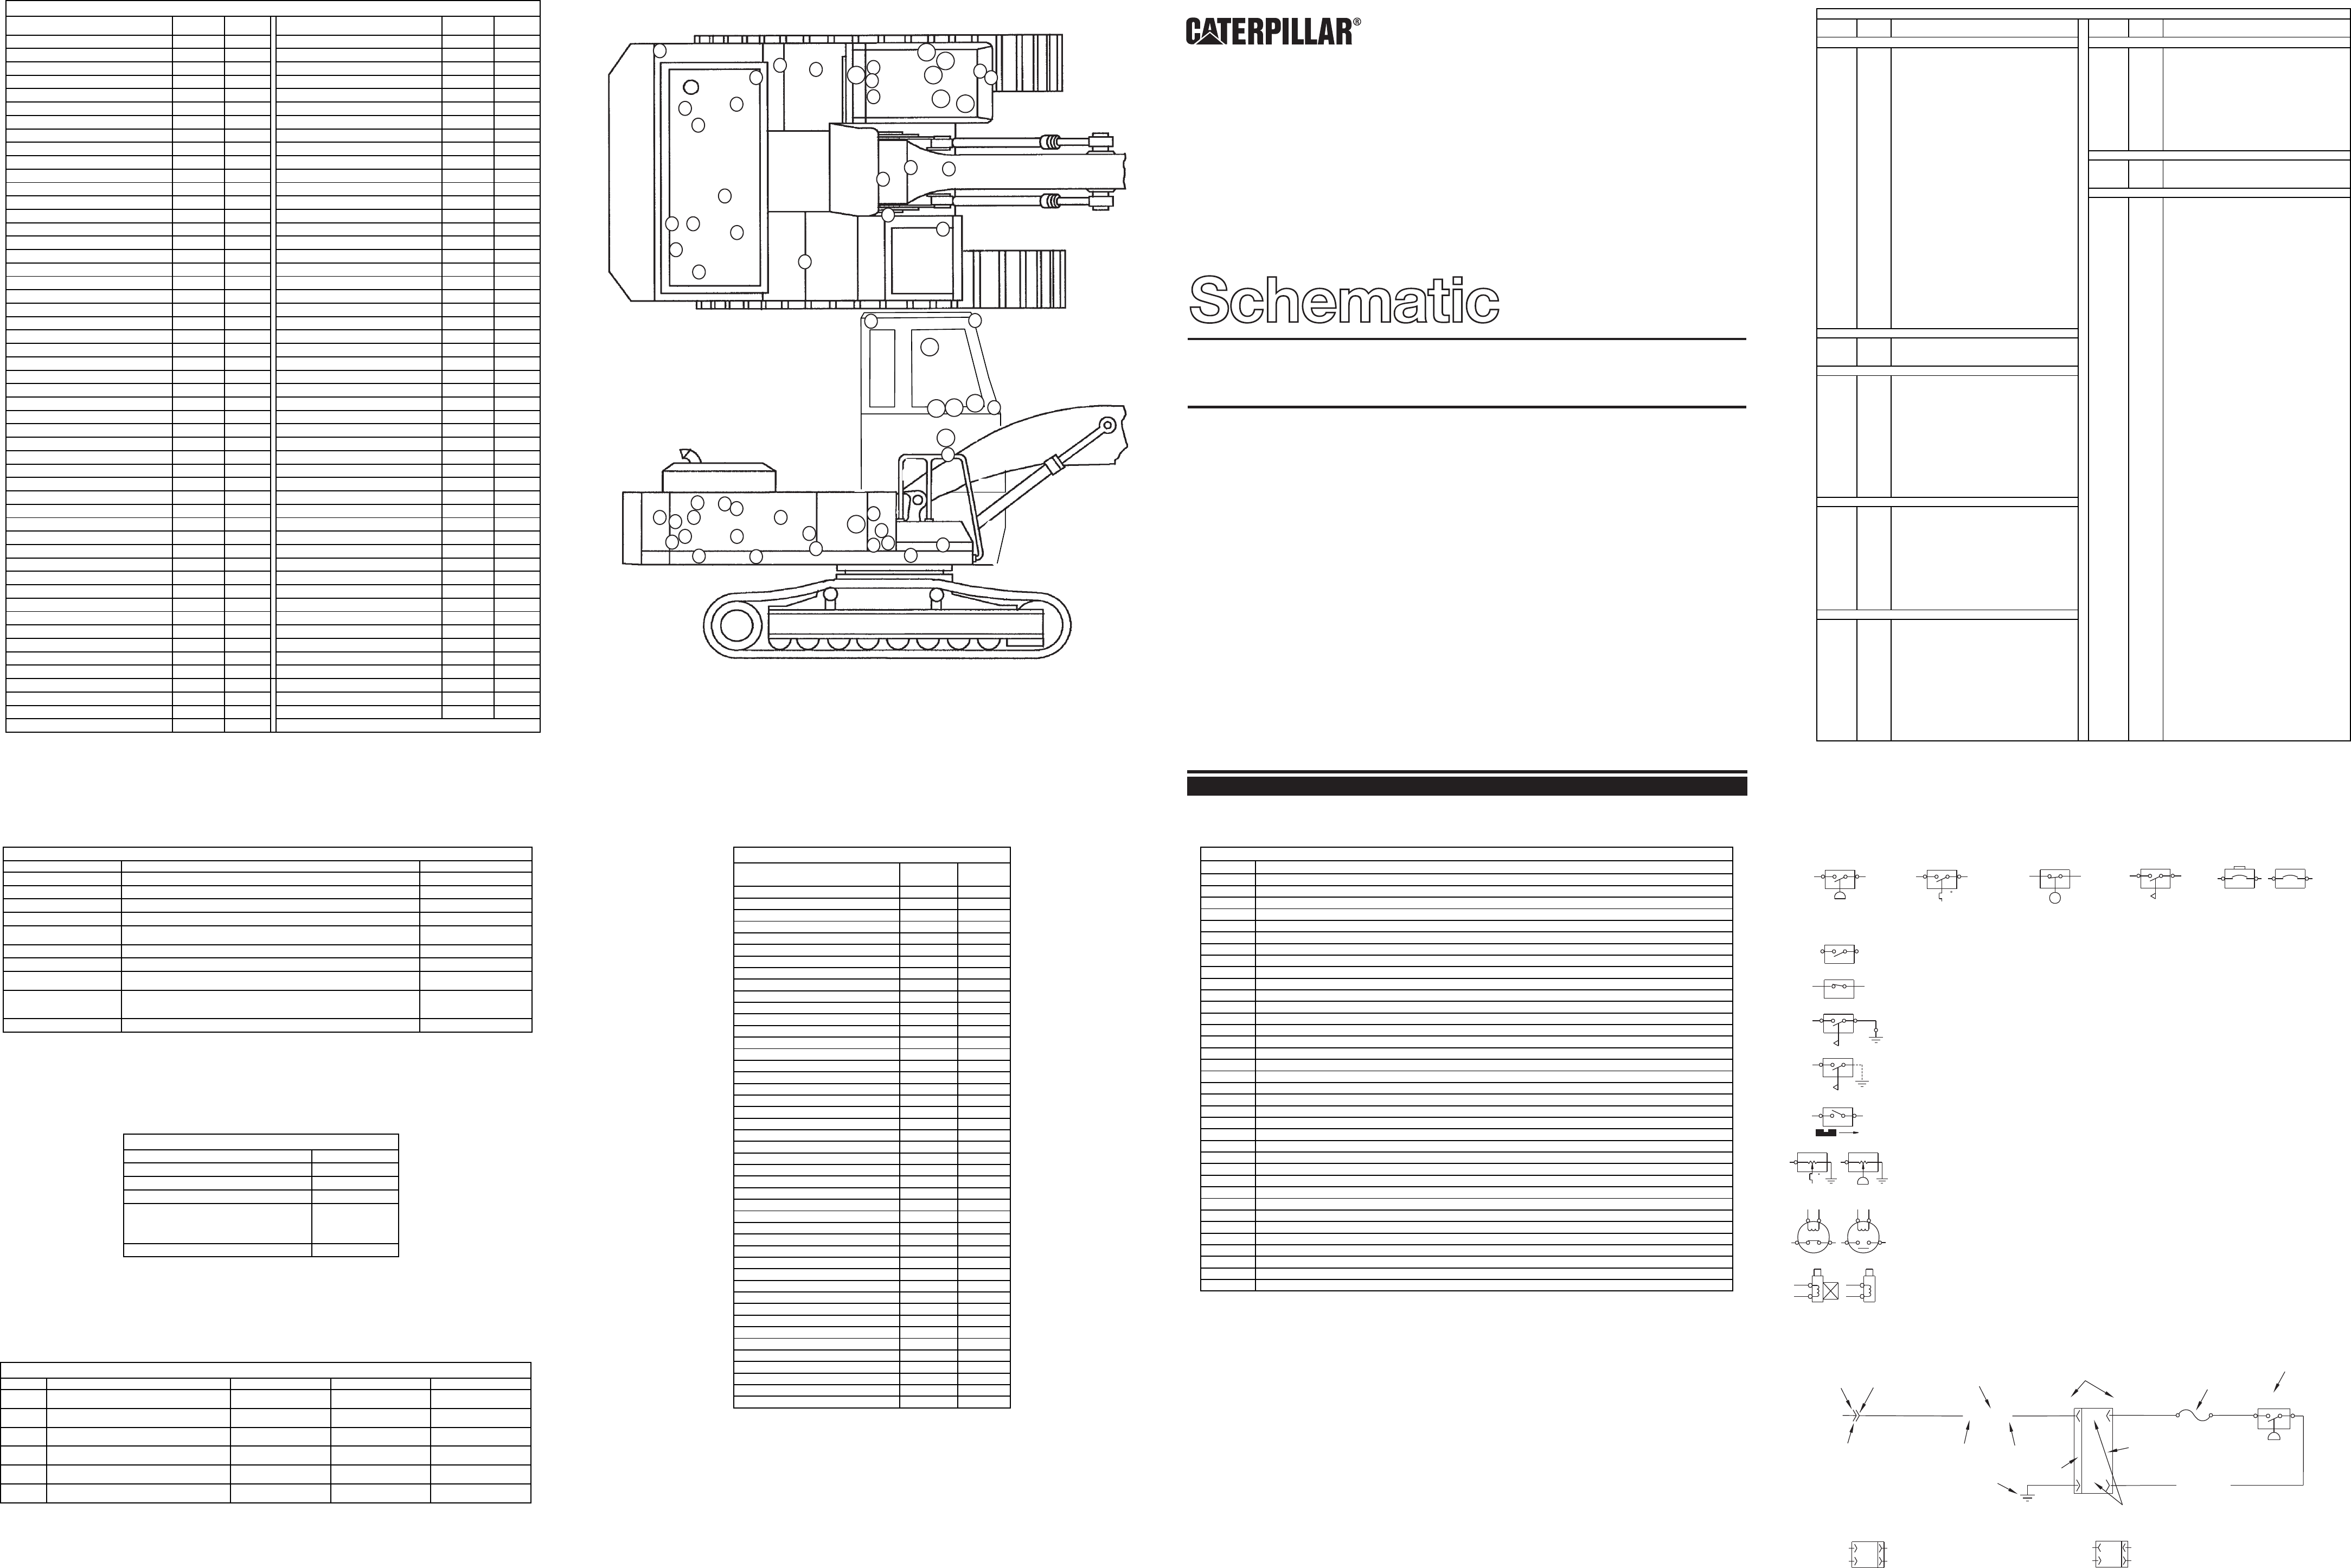 325B MATERIAL HANDLER ELECTRICAL SCHEMATIC USED IN SERVICE MANUAL SENR8955  | CAT Machines Electrical SchematicCAT Machines Electrical Schematic